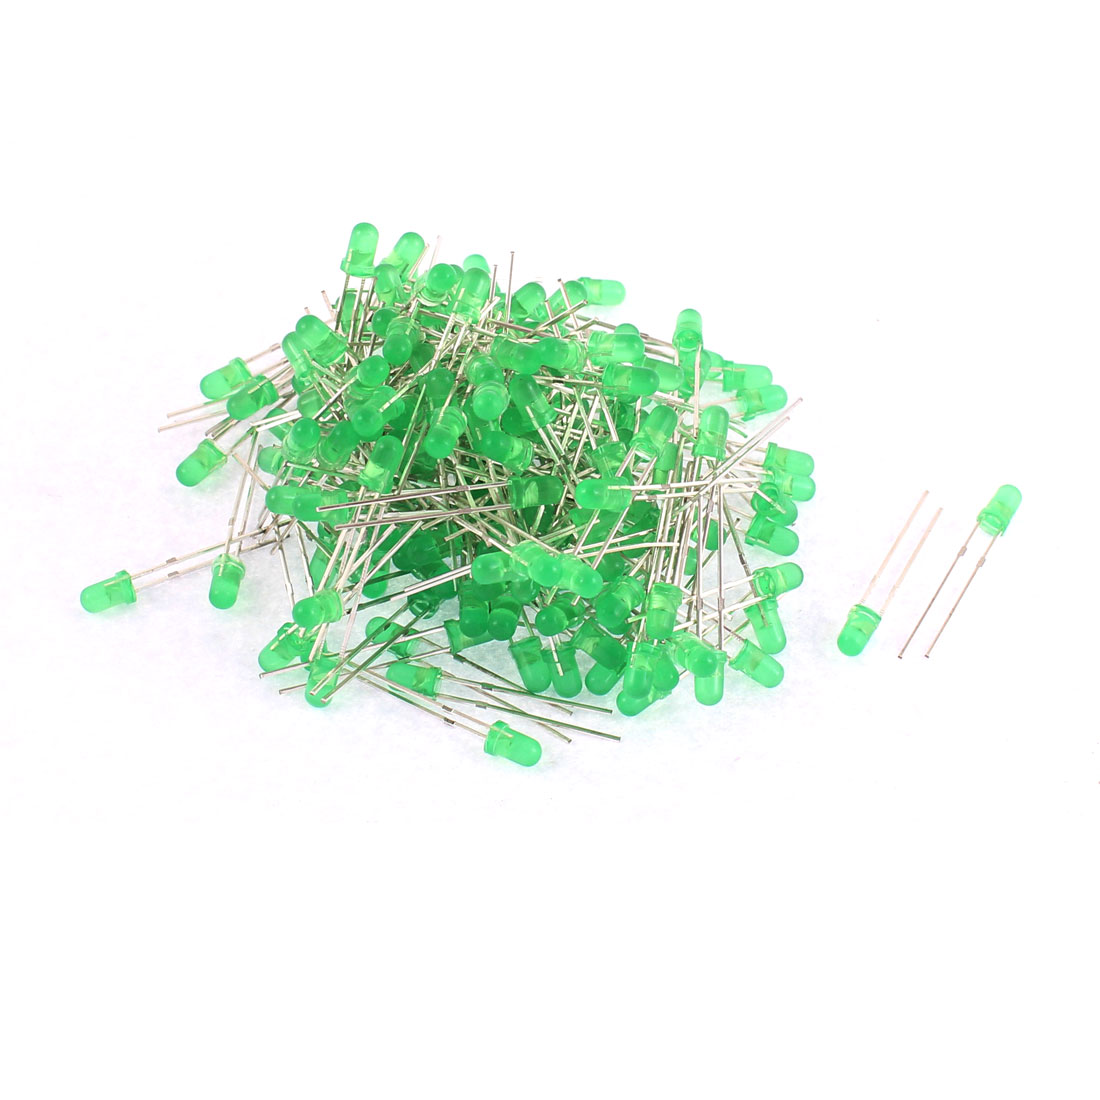 200pcs 25 x 4mm 2 Terminals Green Light Emitting Diode LEDs Lamp Bulb